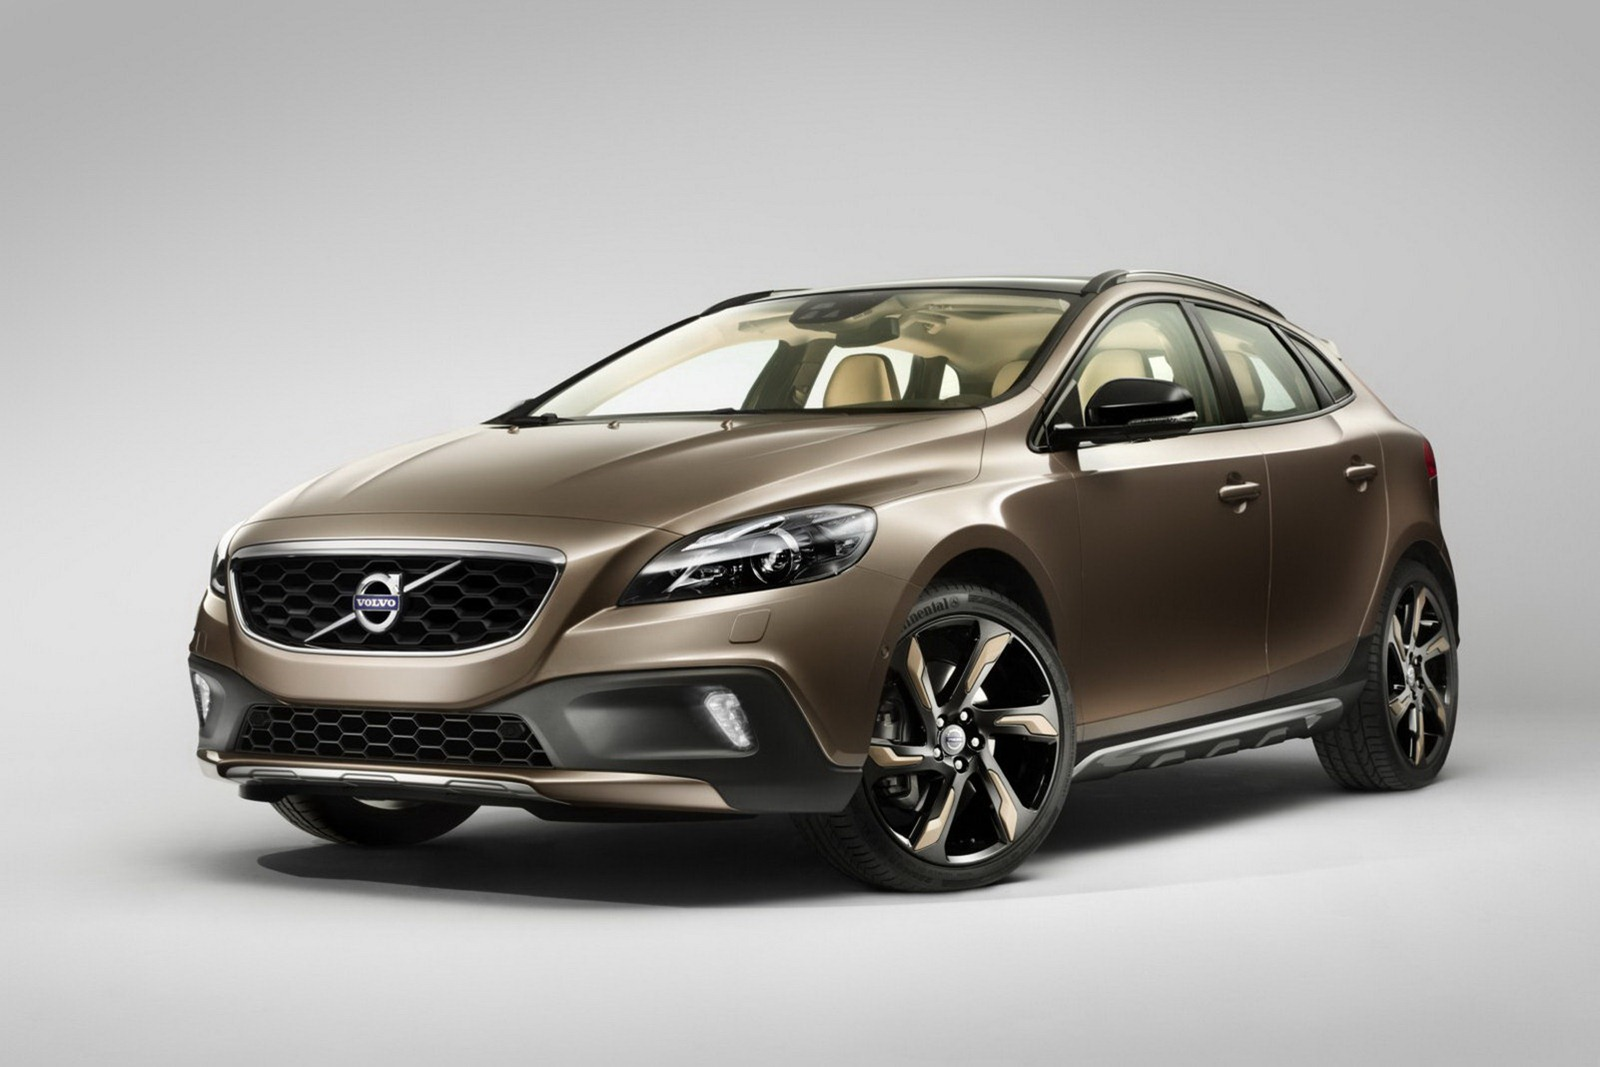 Volvo_V40_Cross_Country_Front_3Q